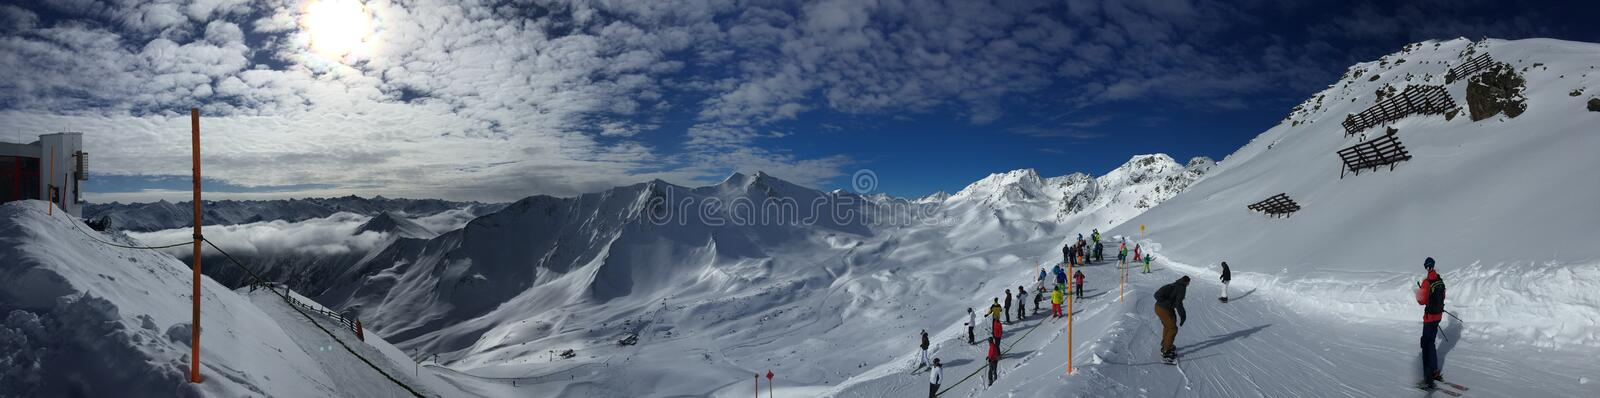 Skiing in heaven royalty free stock photo